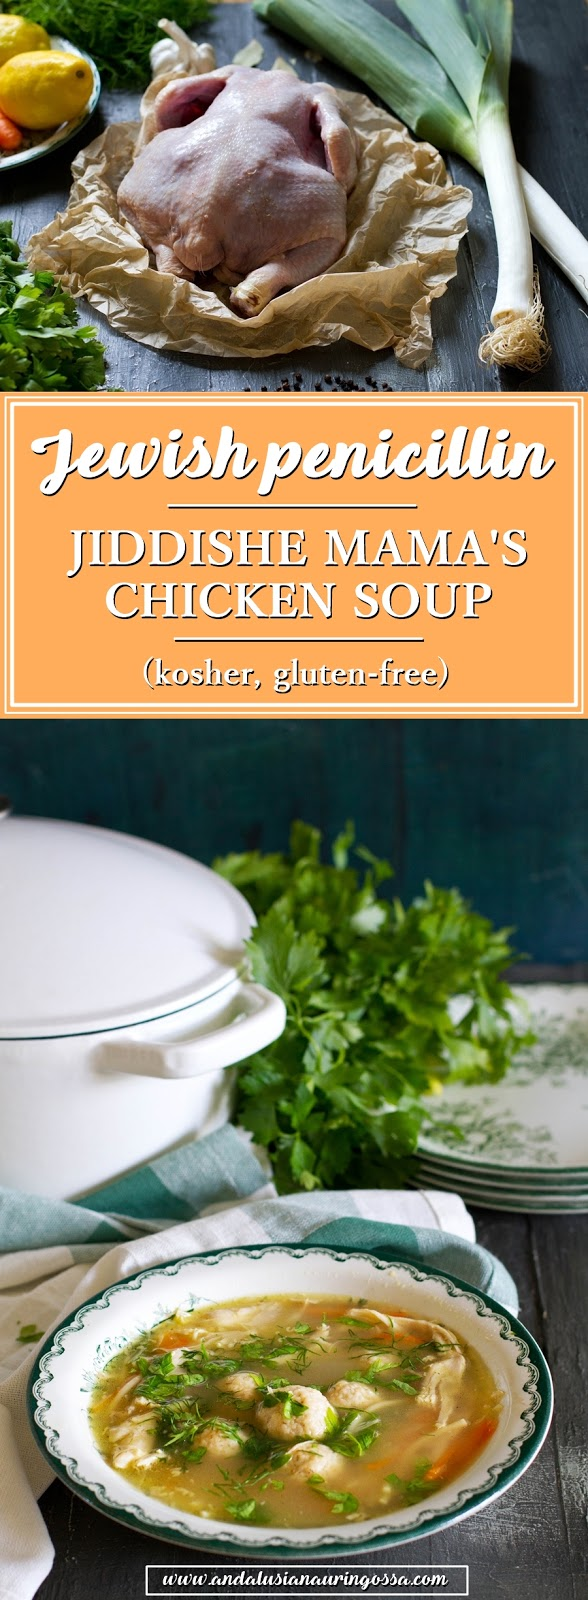 Jewish penicillin_Jewish chicken soup with matzo balls_Jiddishe mama's chicken soup_kosher_gluten-free_Under the Andalusian Sun_food blog_PIN ME